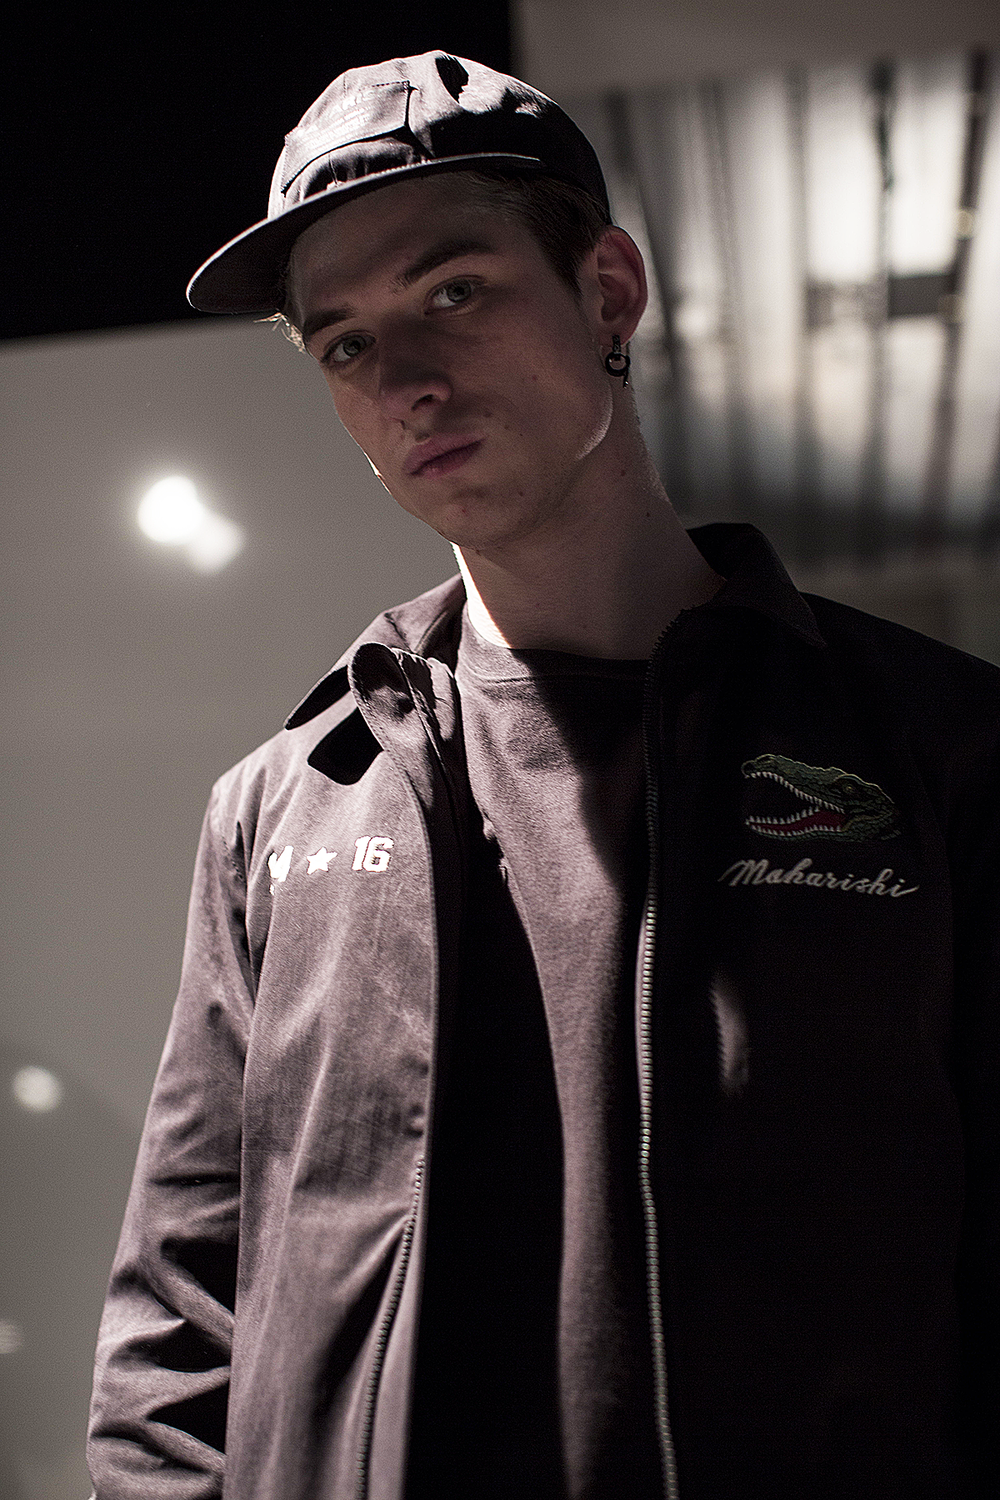 London Collections LCM-Maharishi-Black Cap Autumn Winter 2016 Lillie Eiger.png